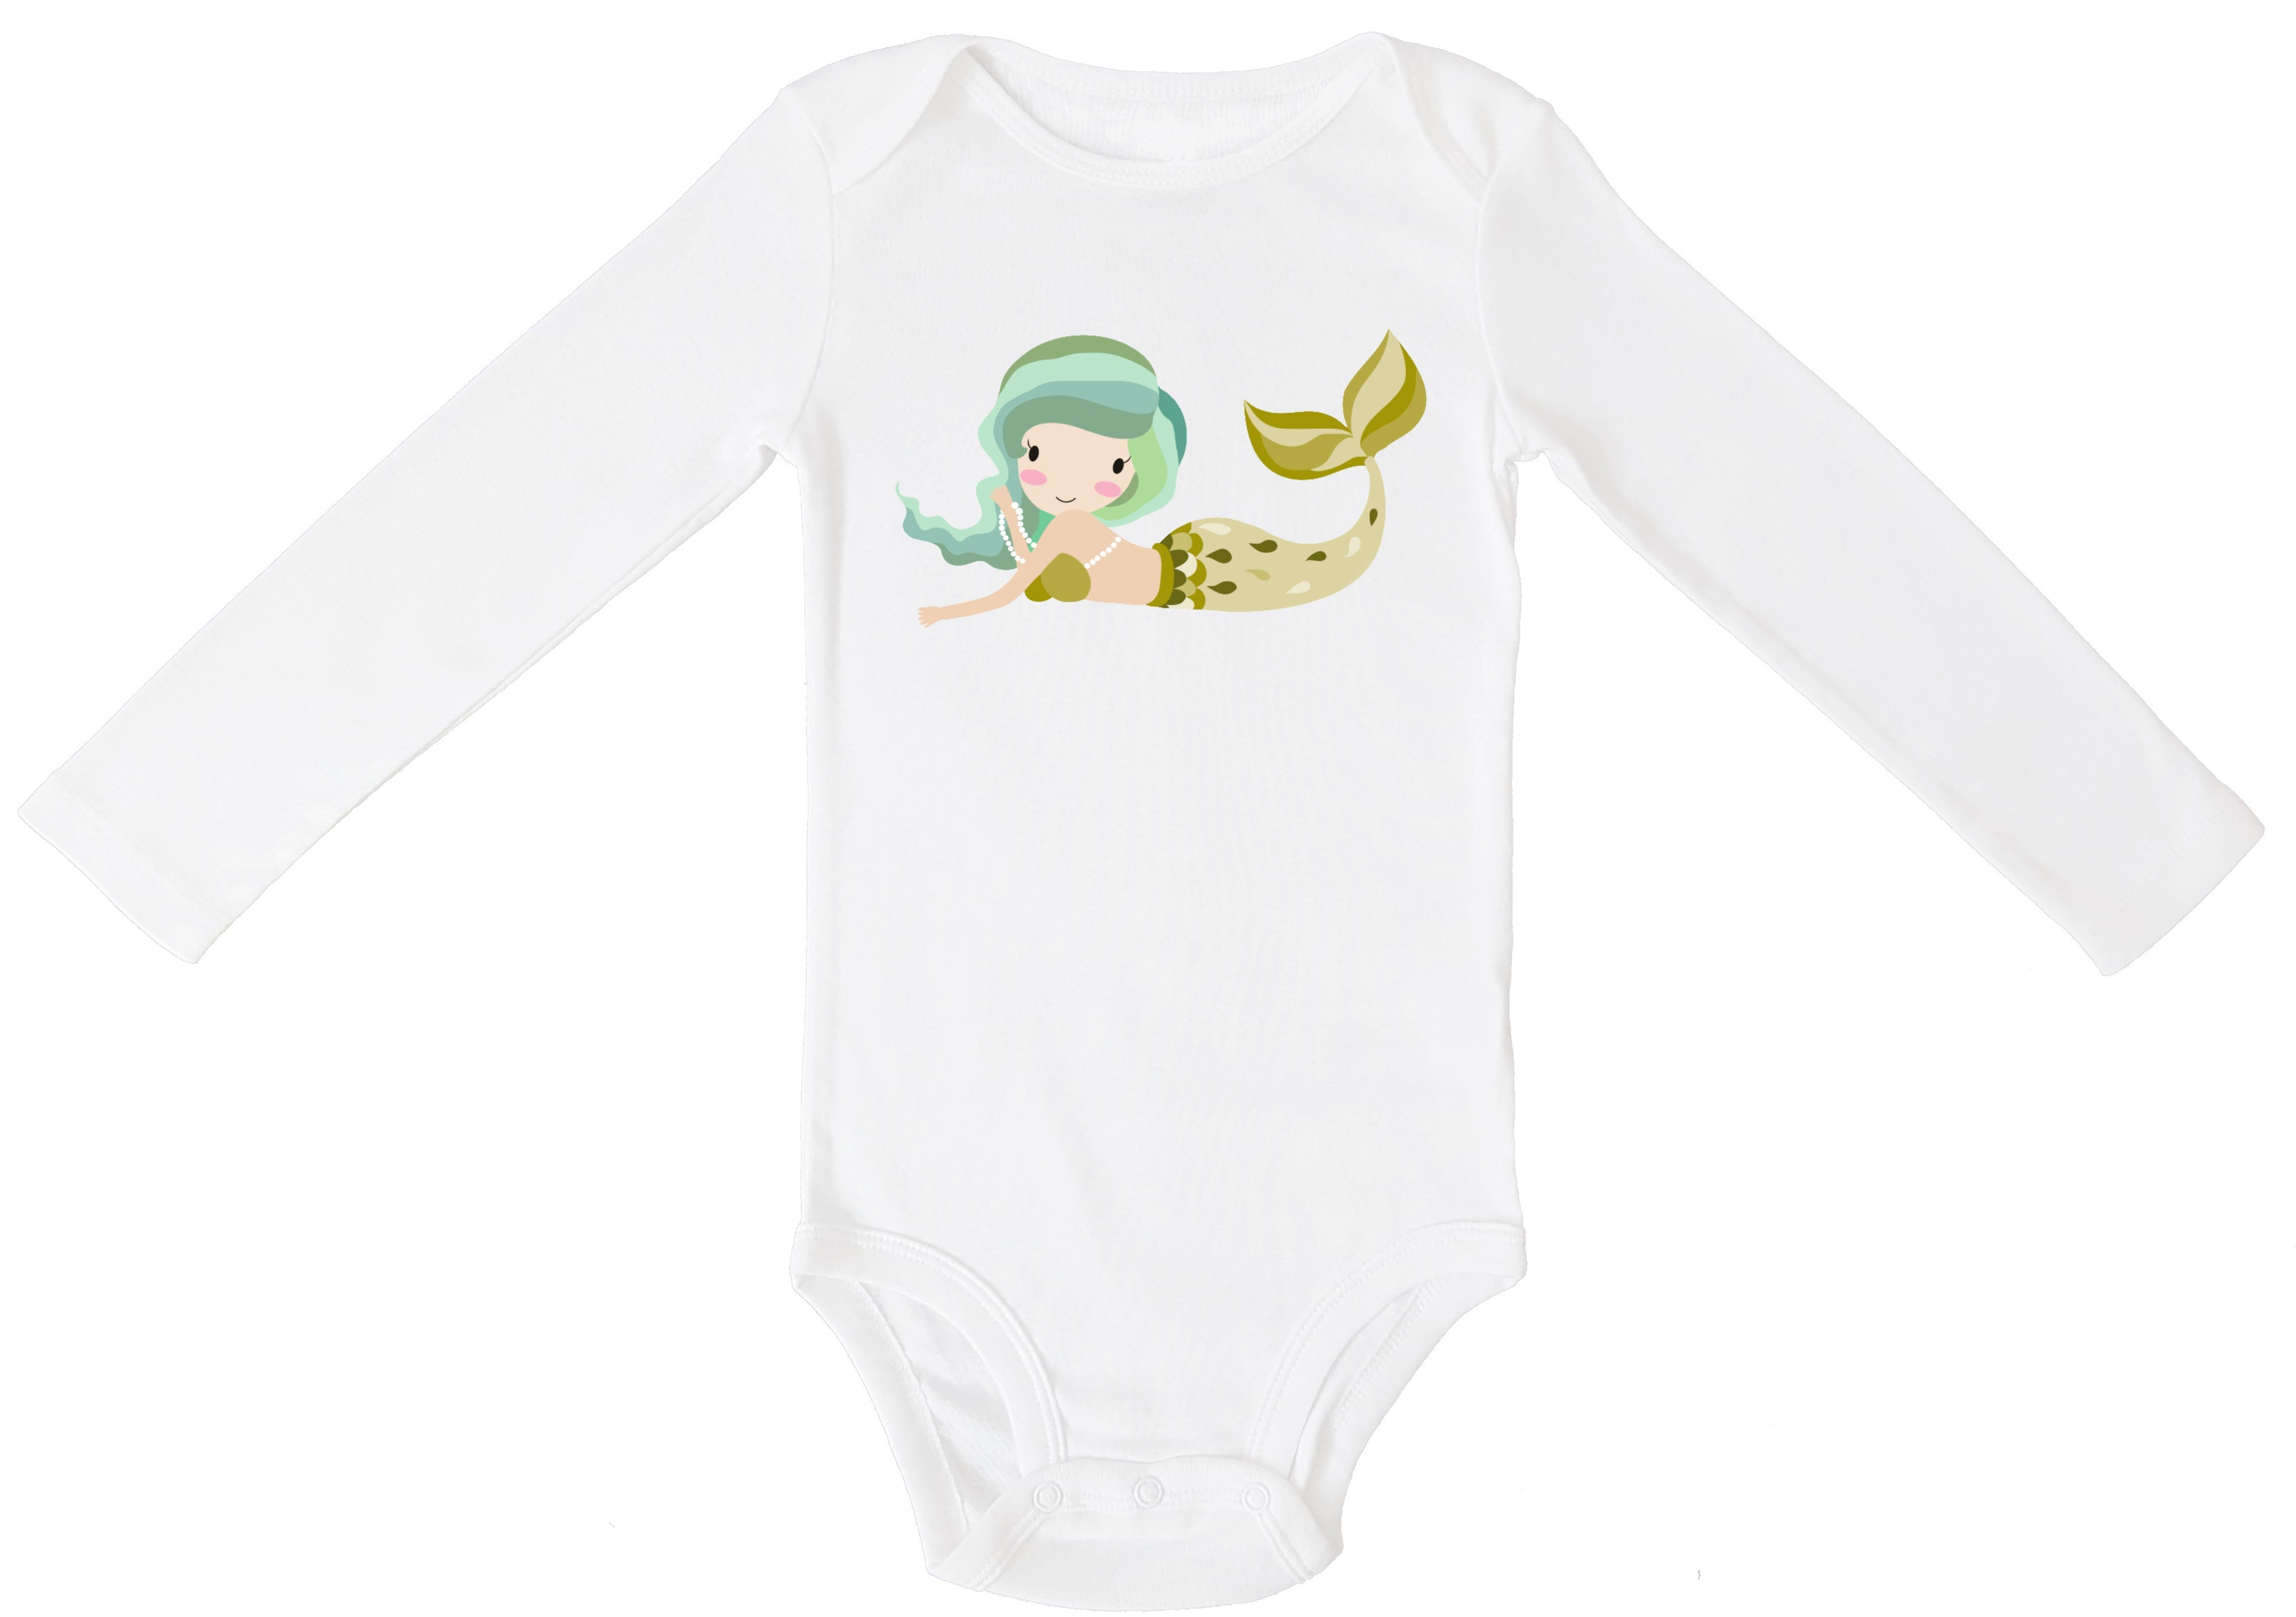 Mermaid Personalized Bodysuit or T-shirt - Aribella Collection